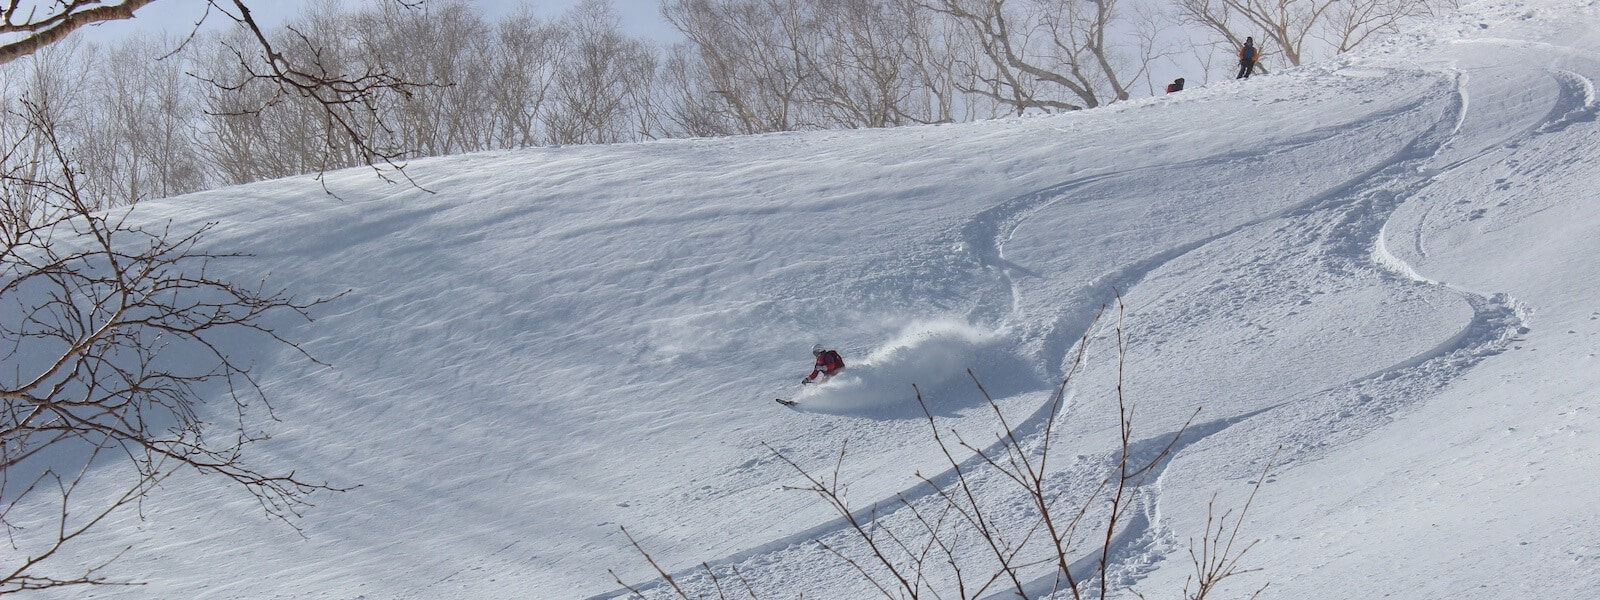 hakuba backcountry skiing